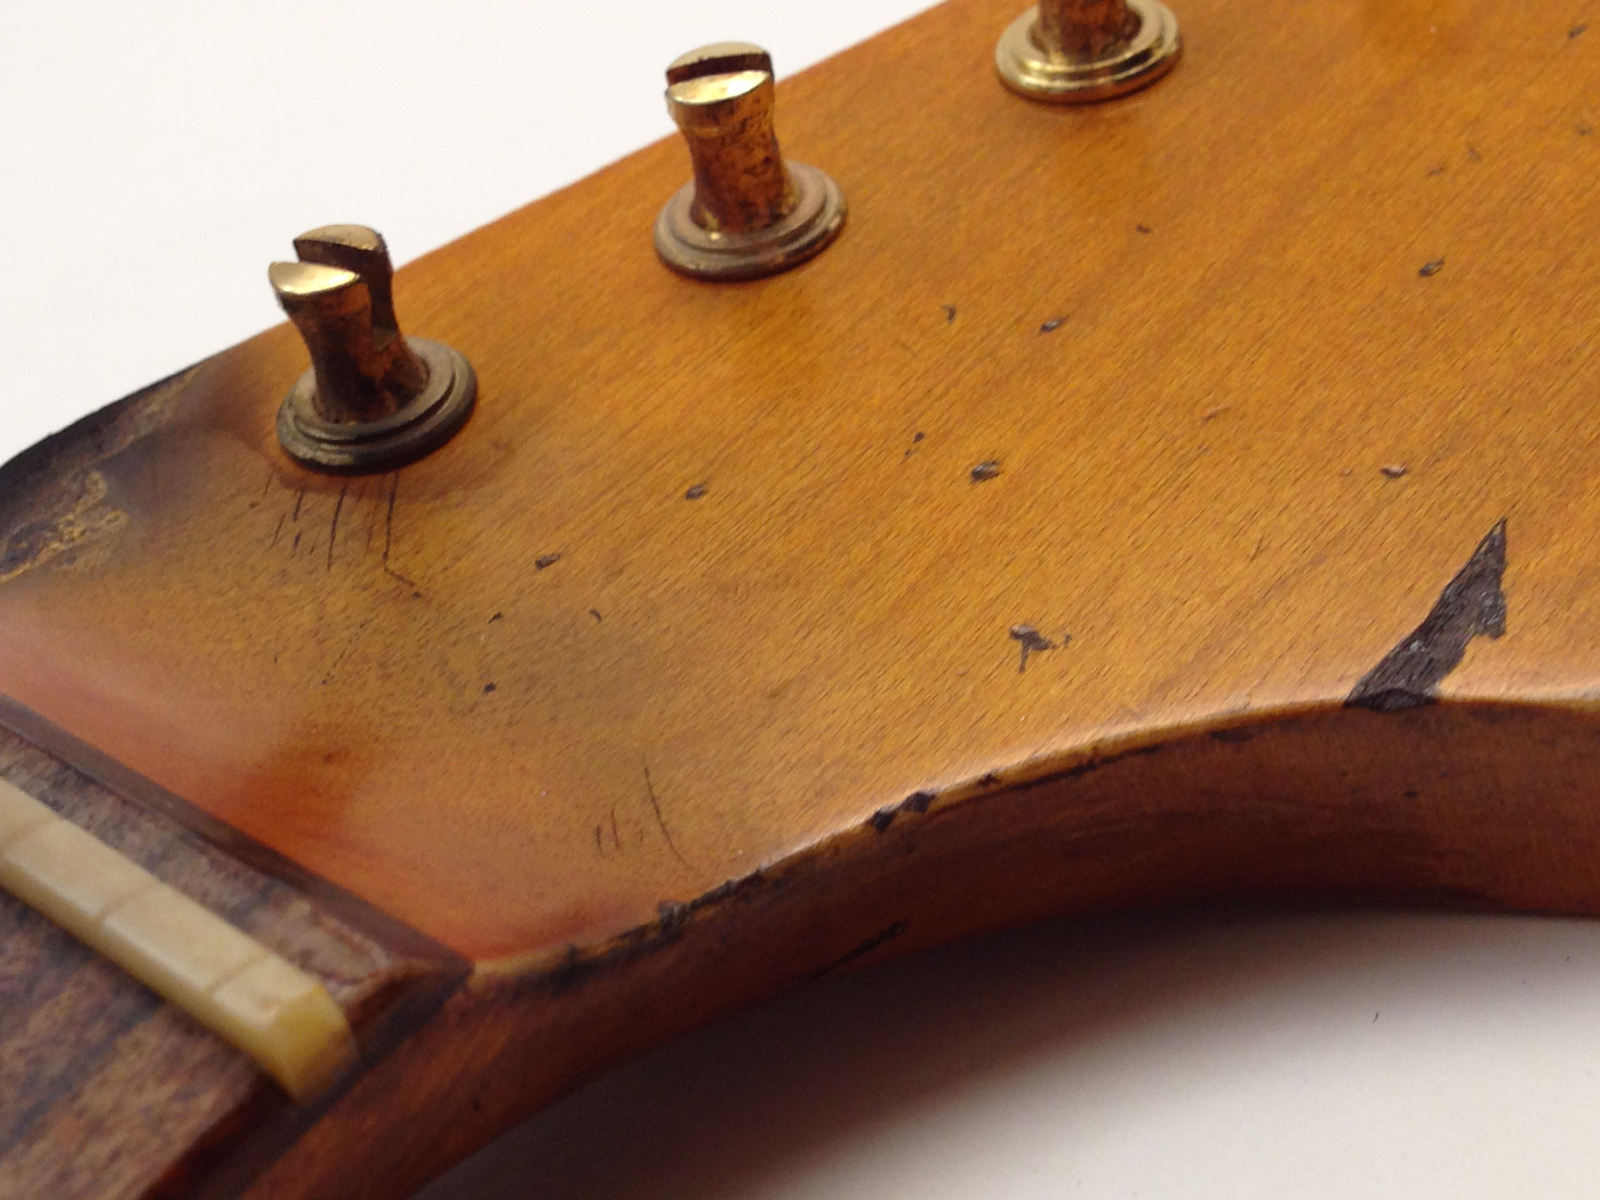 Aged Neck - SRV #1 First Wife Replica Stratocaster Replacement